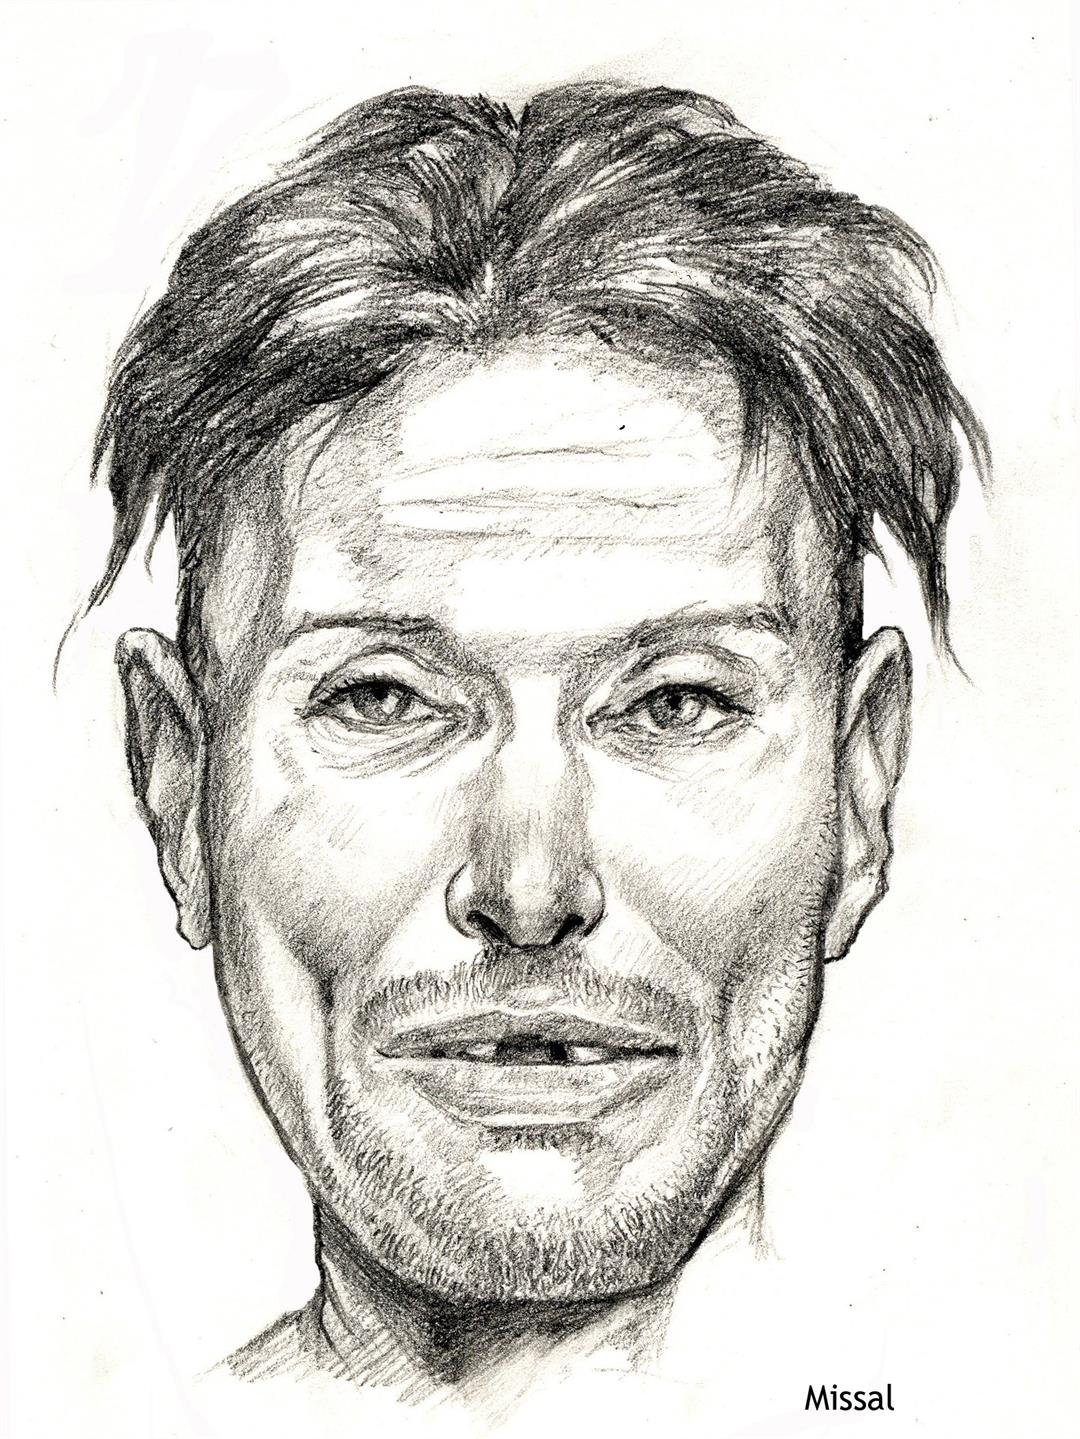 They say the body was located Dec. 18 in the area of Grandand 75th avenues. (Source: Peoria Police Department)